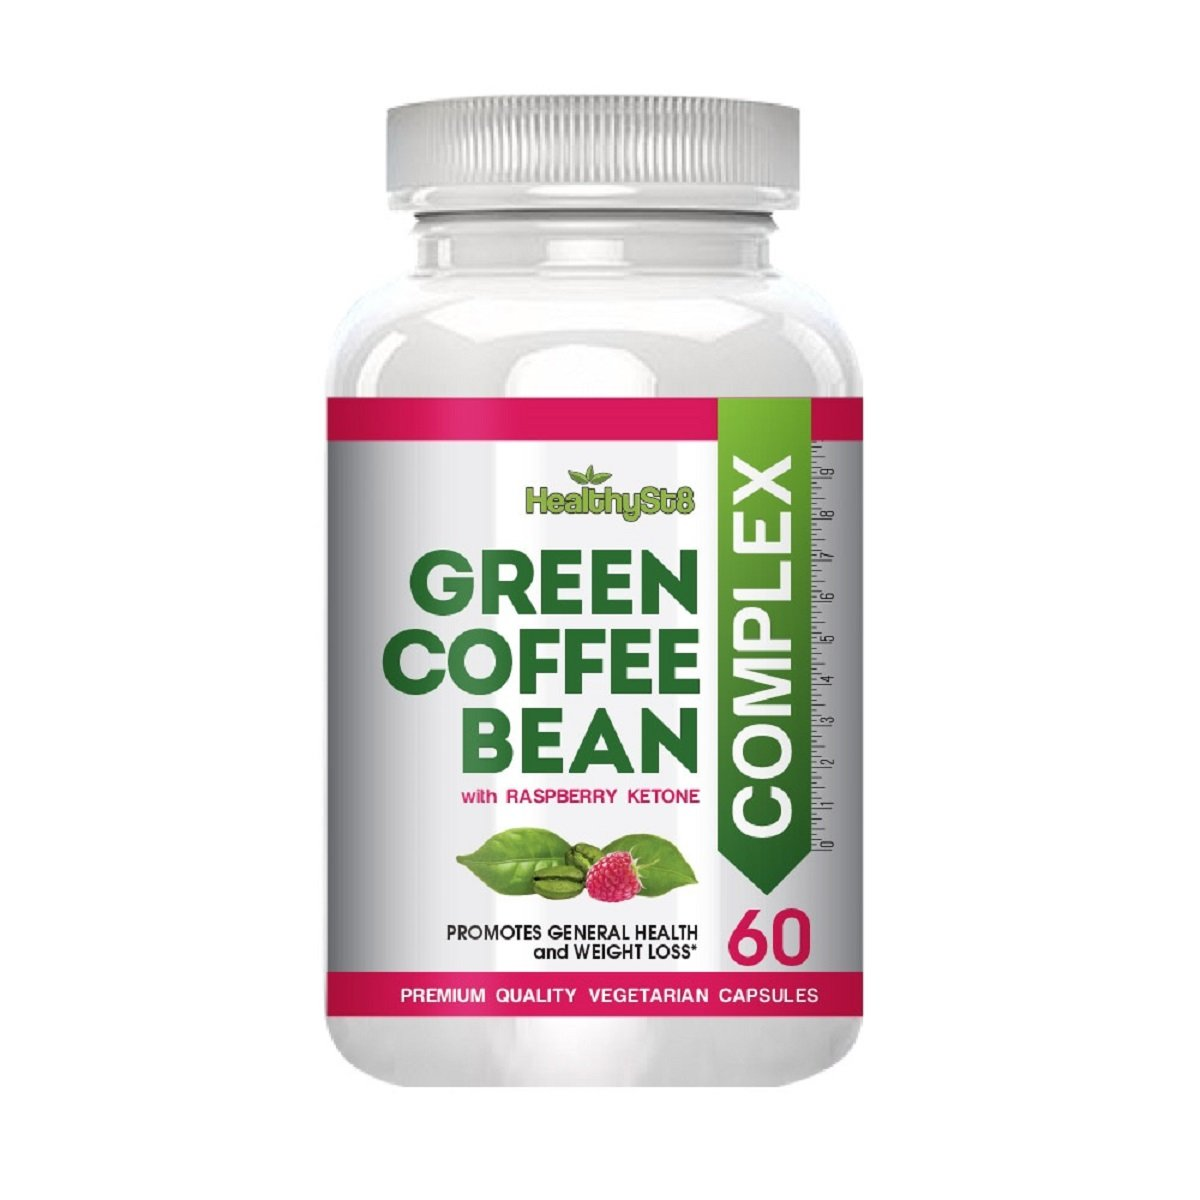 Amazon.com: Slimming Green Coffee Bean Complex with Raspberry Ketones Best Weight Loss Supplement Natural Fat Burner Appetite Suppressant That Works ...